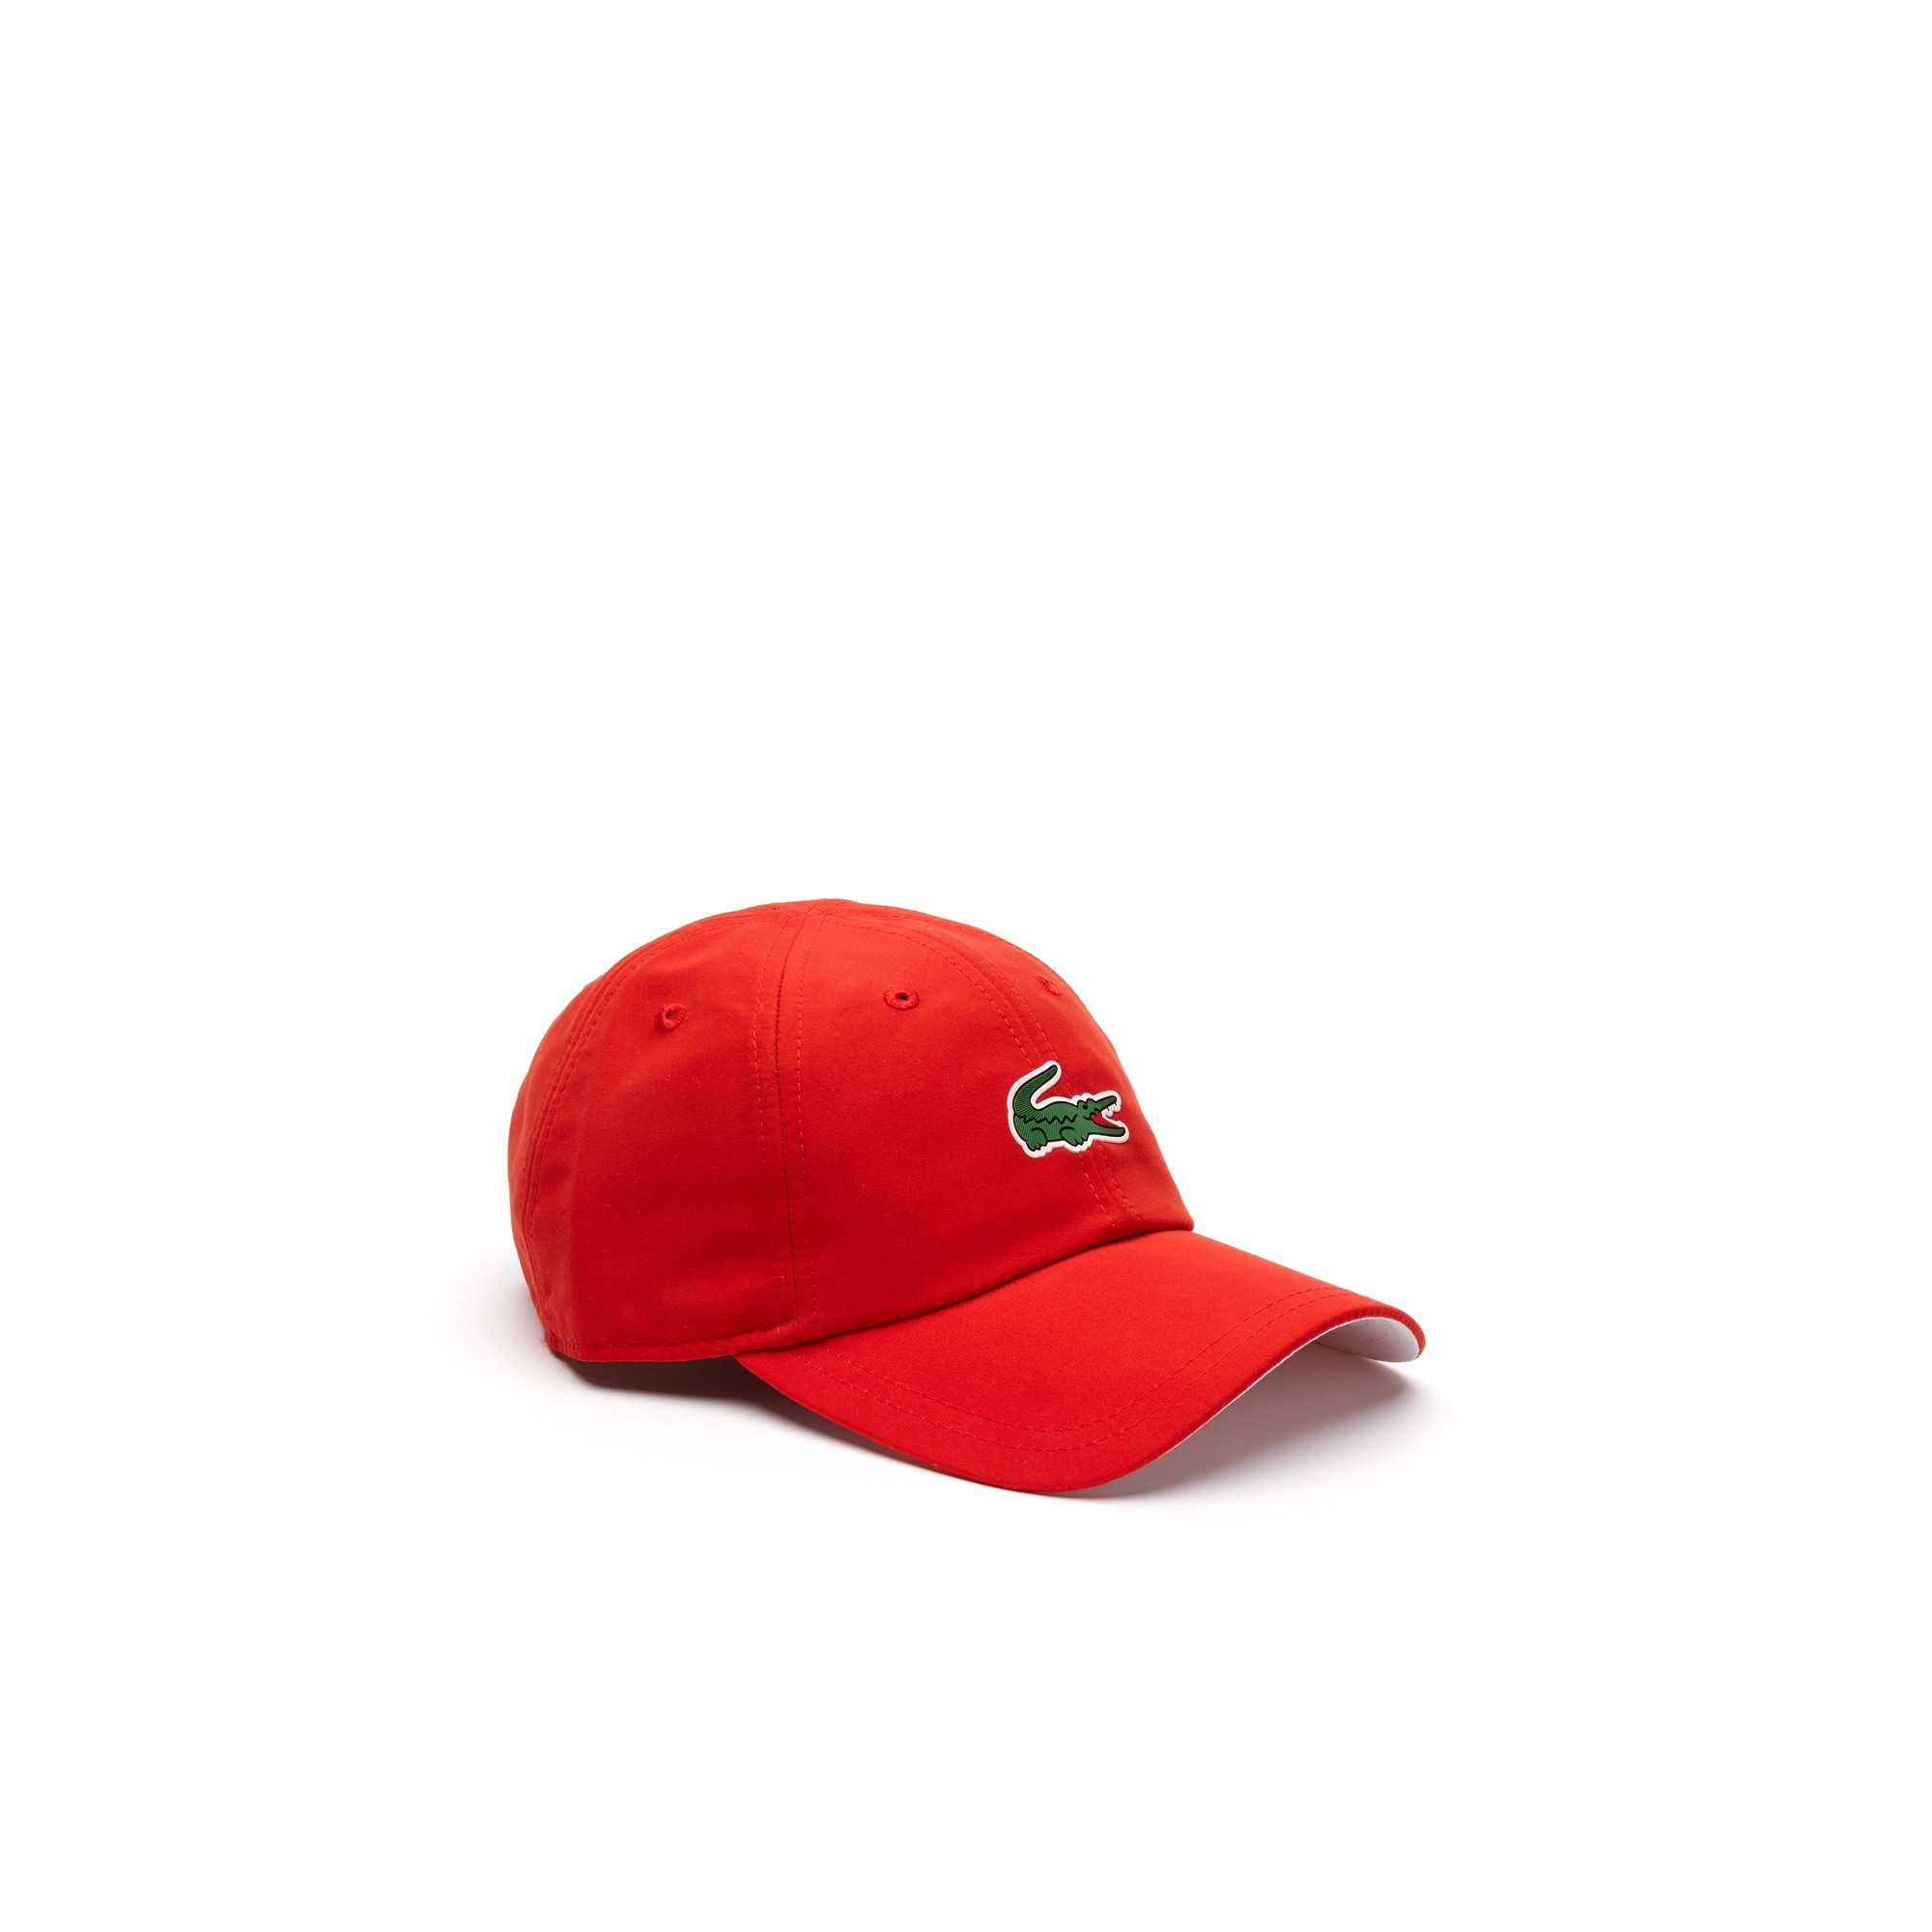 라코스테 Lacoste Mens SPORT Microfiber Cap - x Novak Djokovic On Court Premium Edition,pink / white